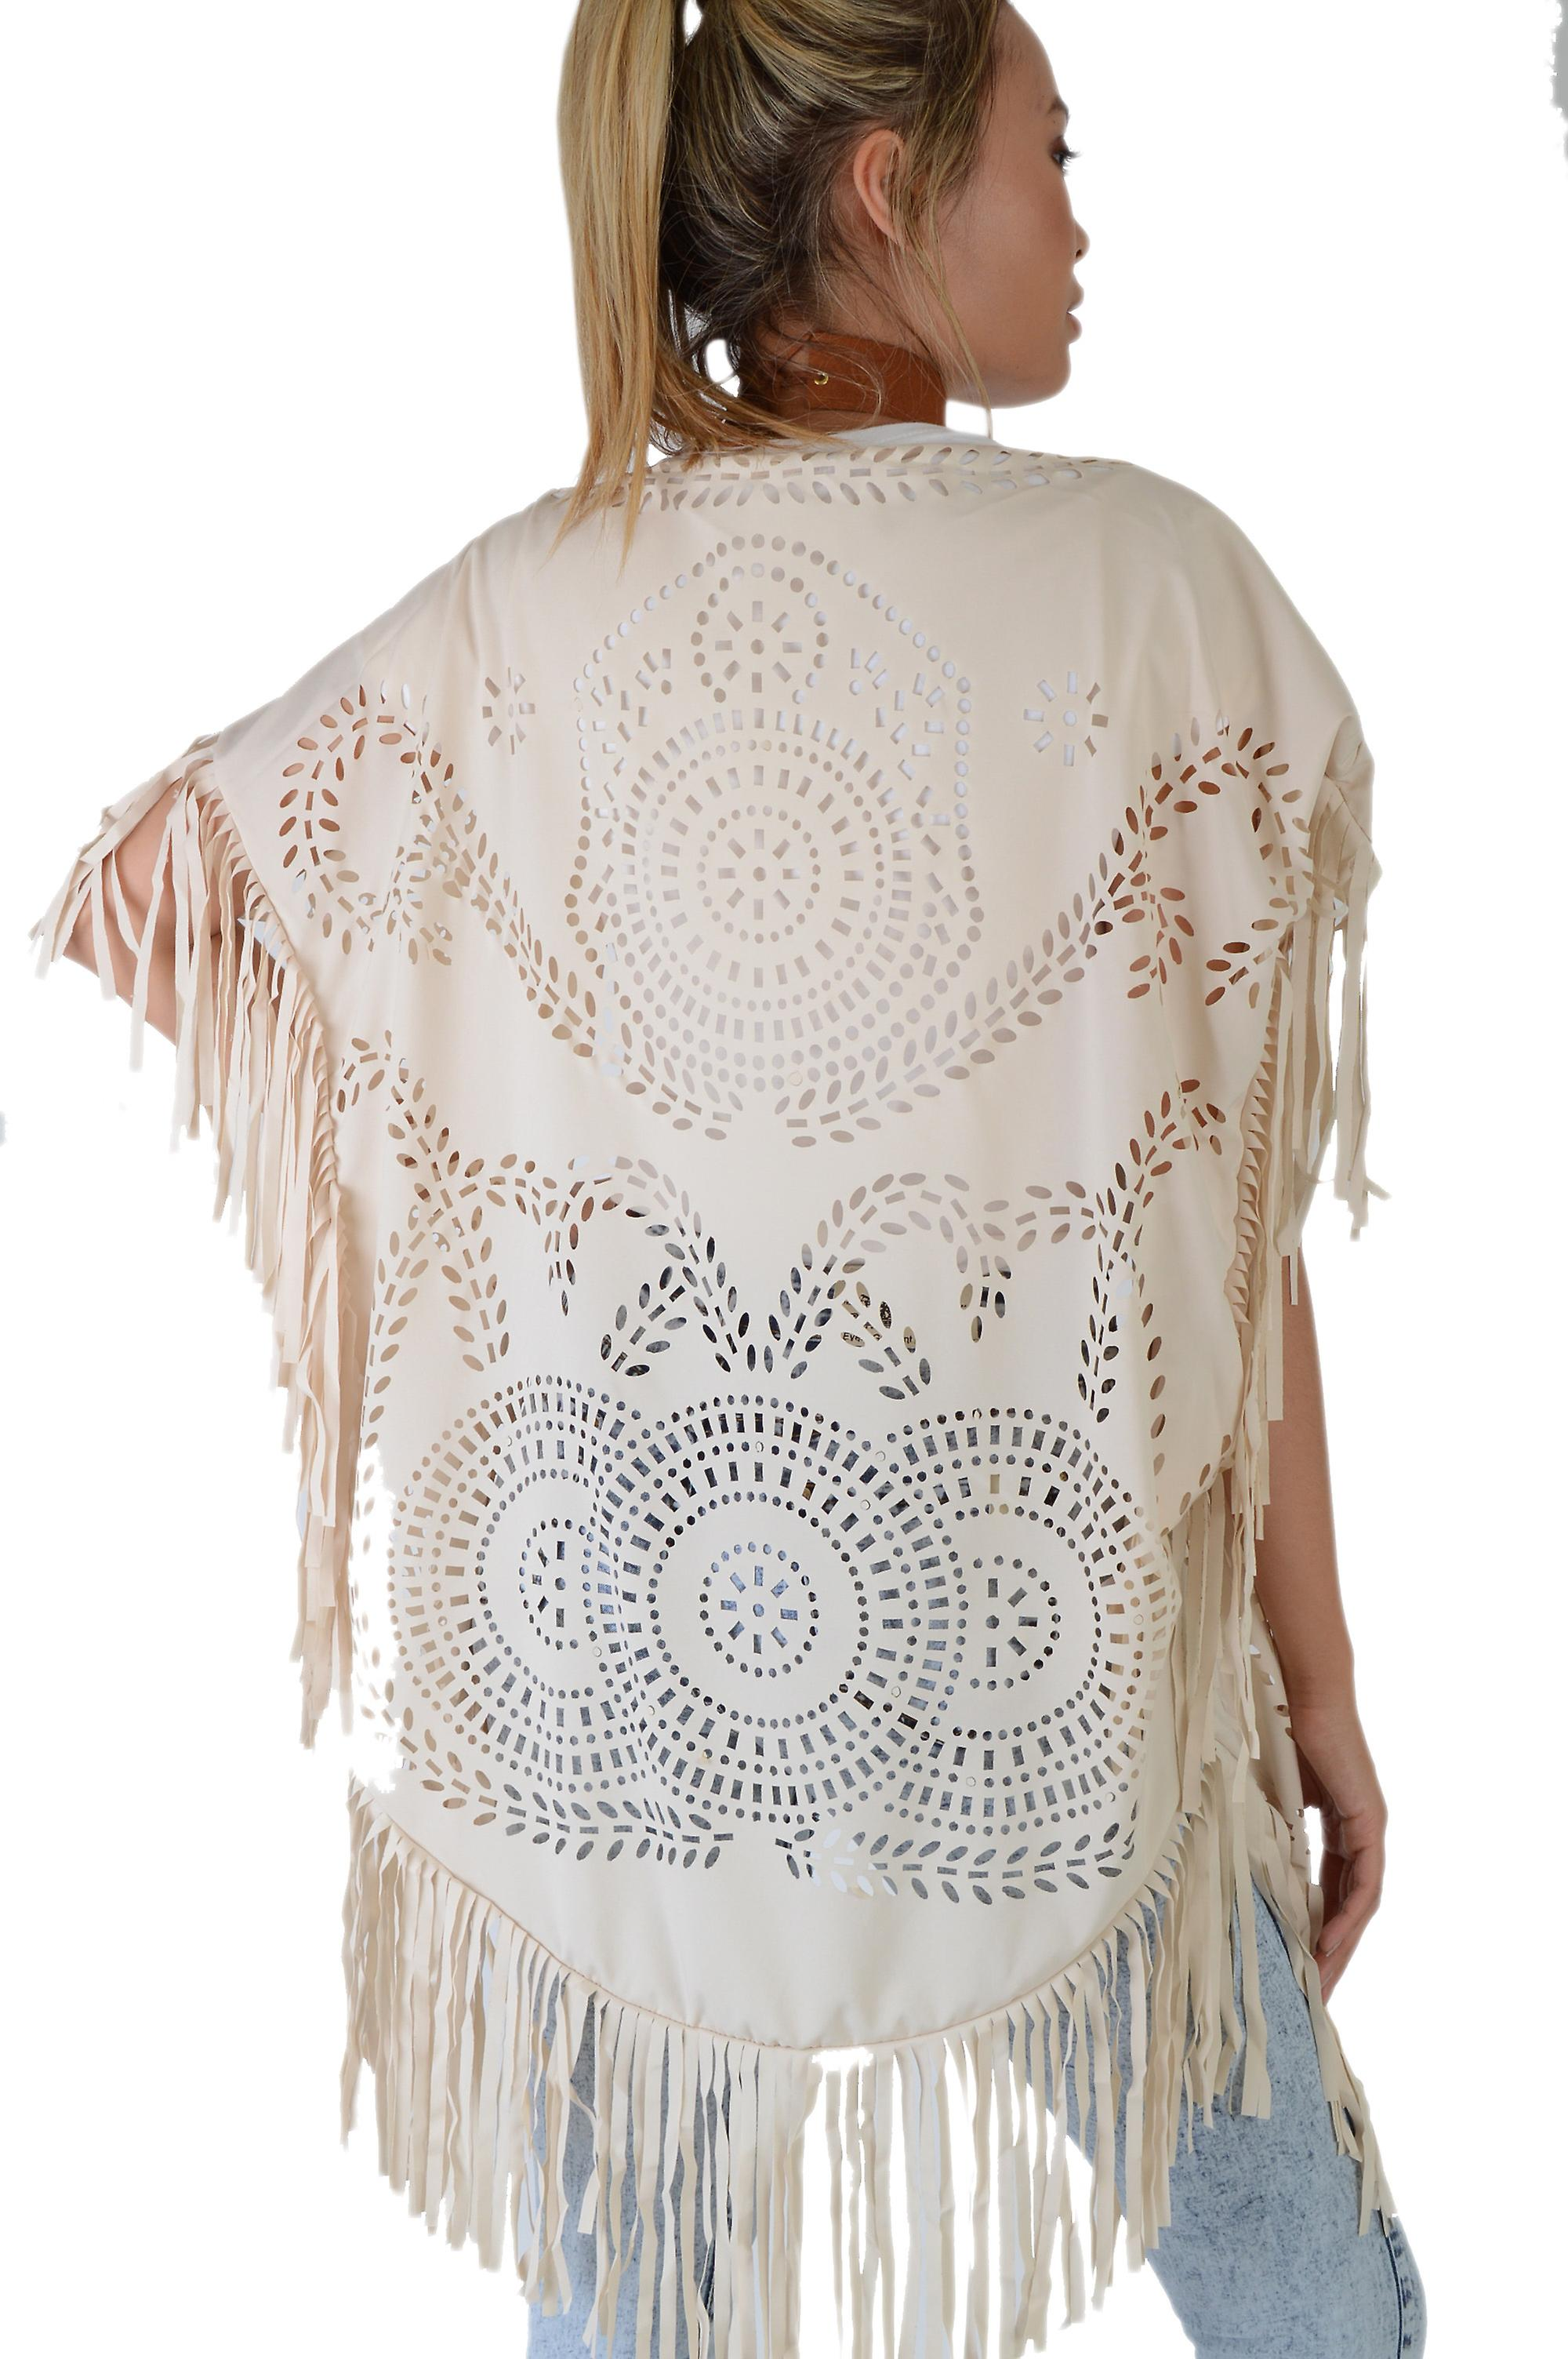 LMS Nude Kimono Featuring Laser Cut And Tassels - SAMPLE